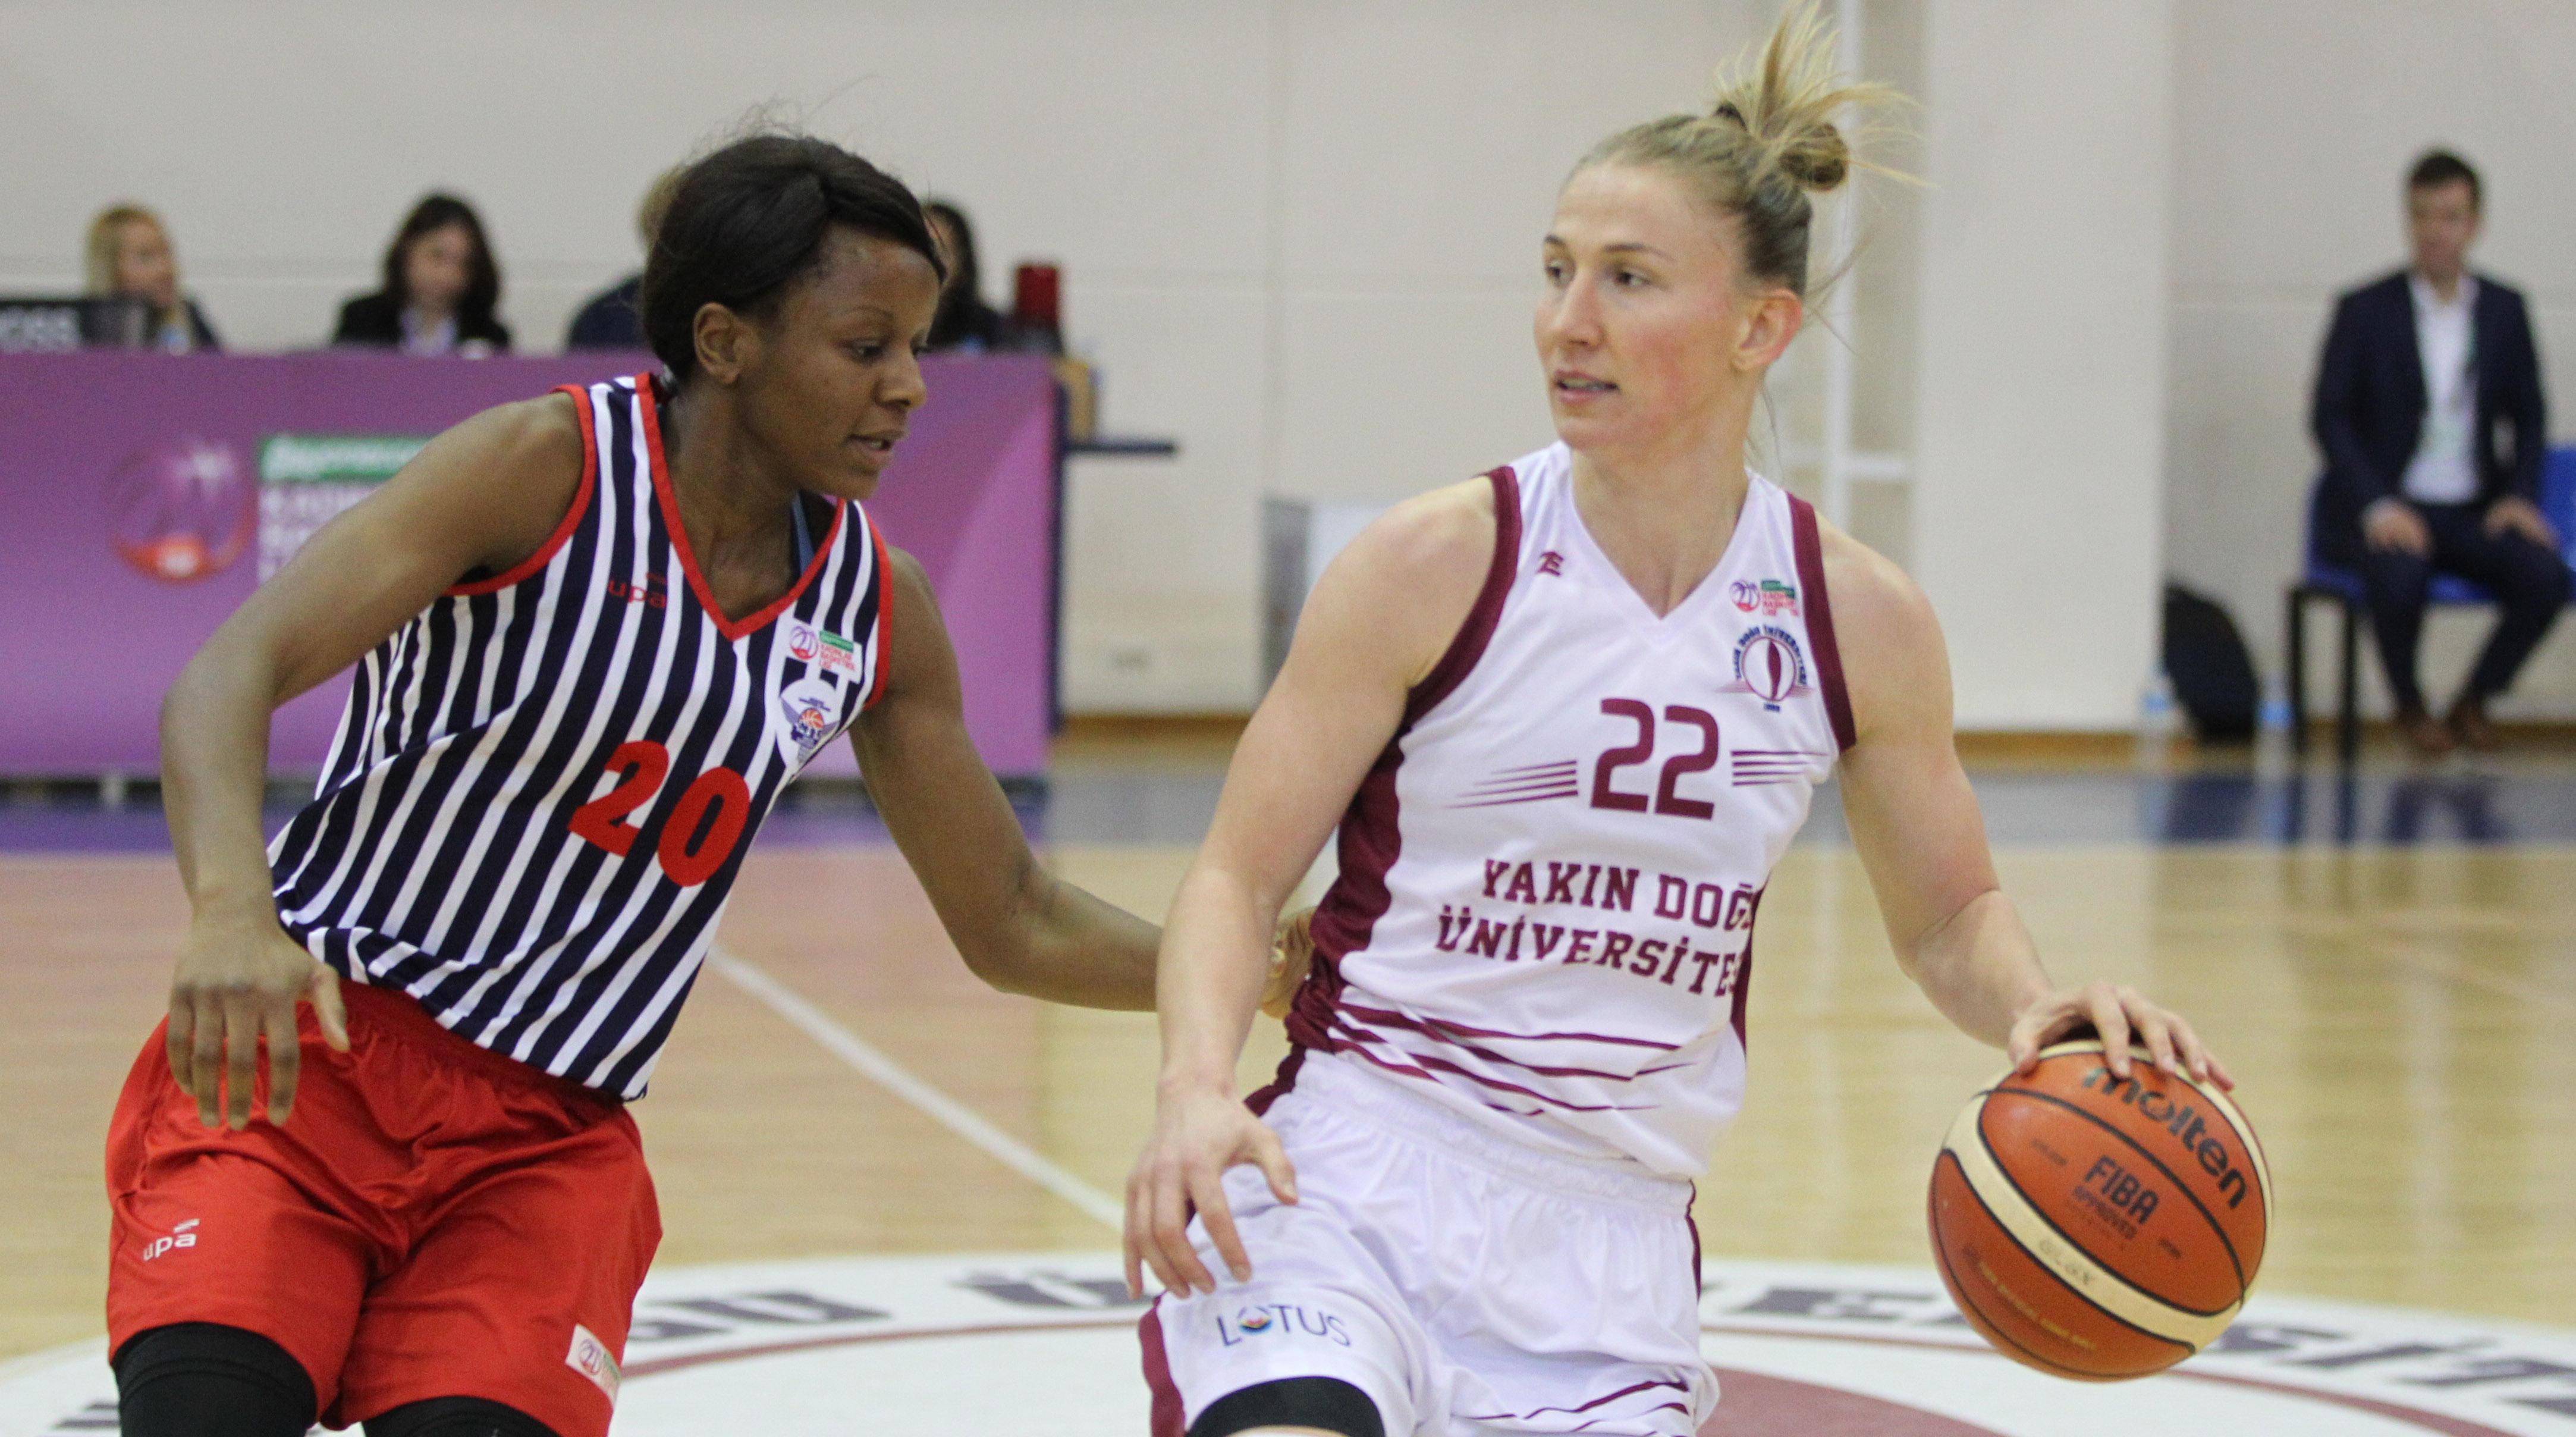 Near East University outscored MBK by doubling up the score… Near East University: 70 – MBK Doğuş Hospital: 34